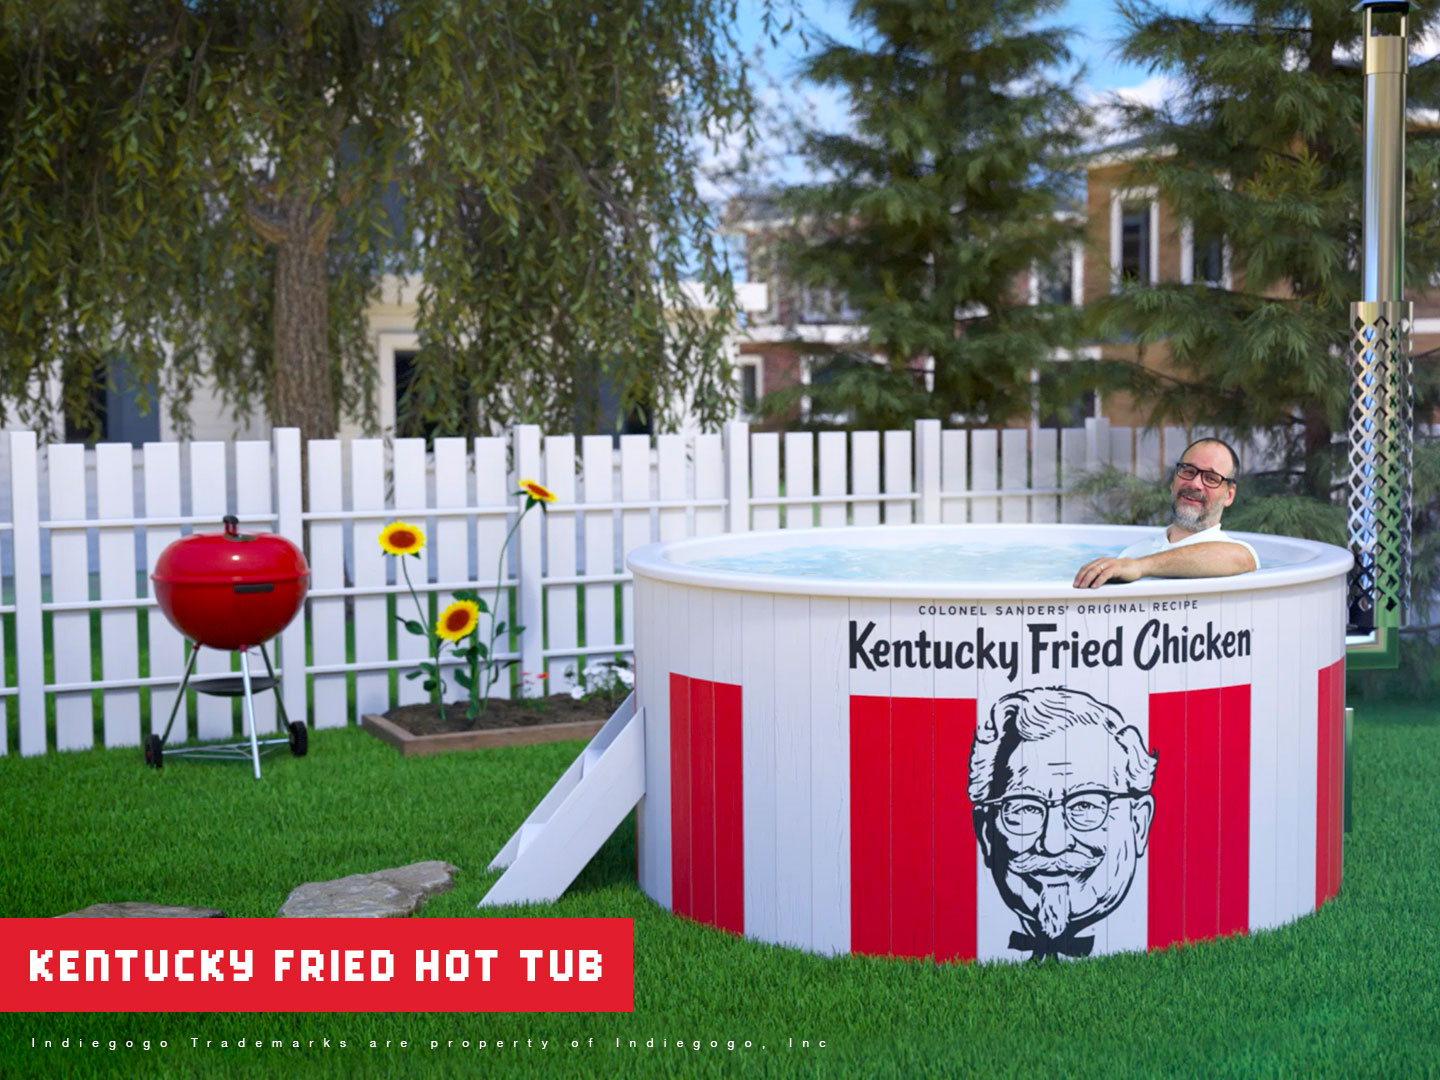 A KFC Bucket Hot Tub and a Colonel Sanders Ice Show Are Raising Funds on Indiegogo